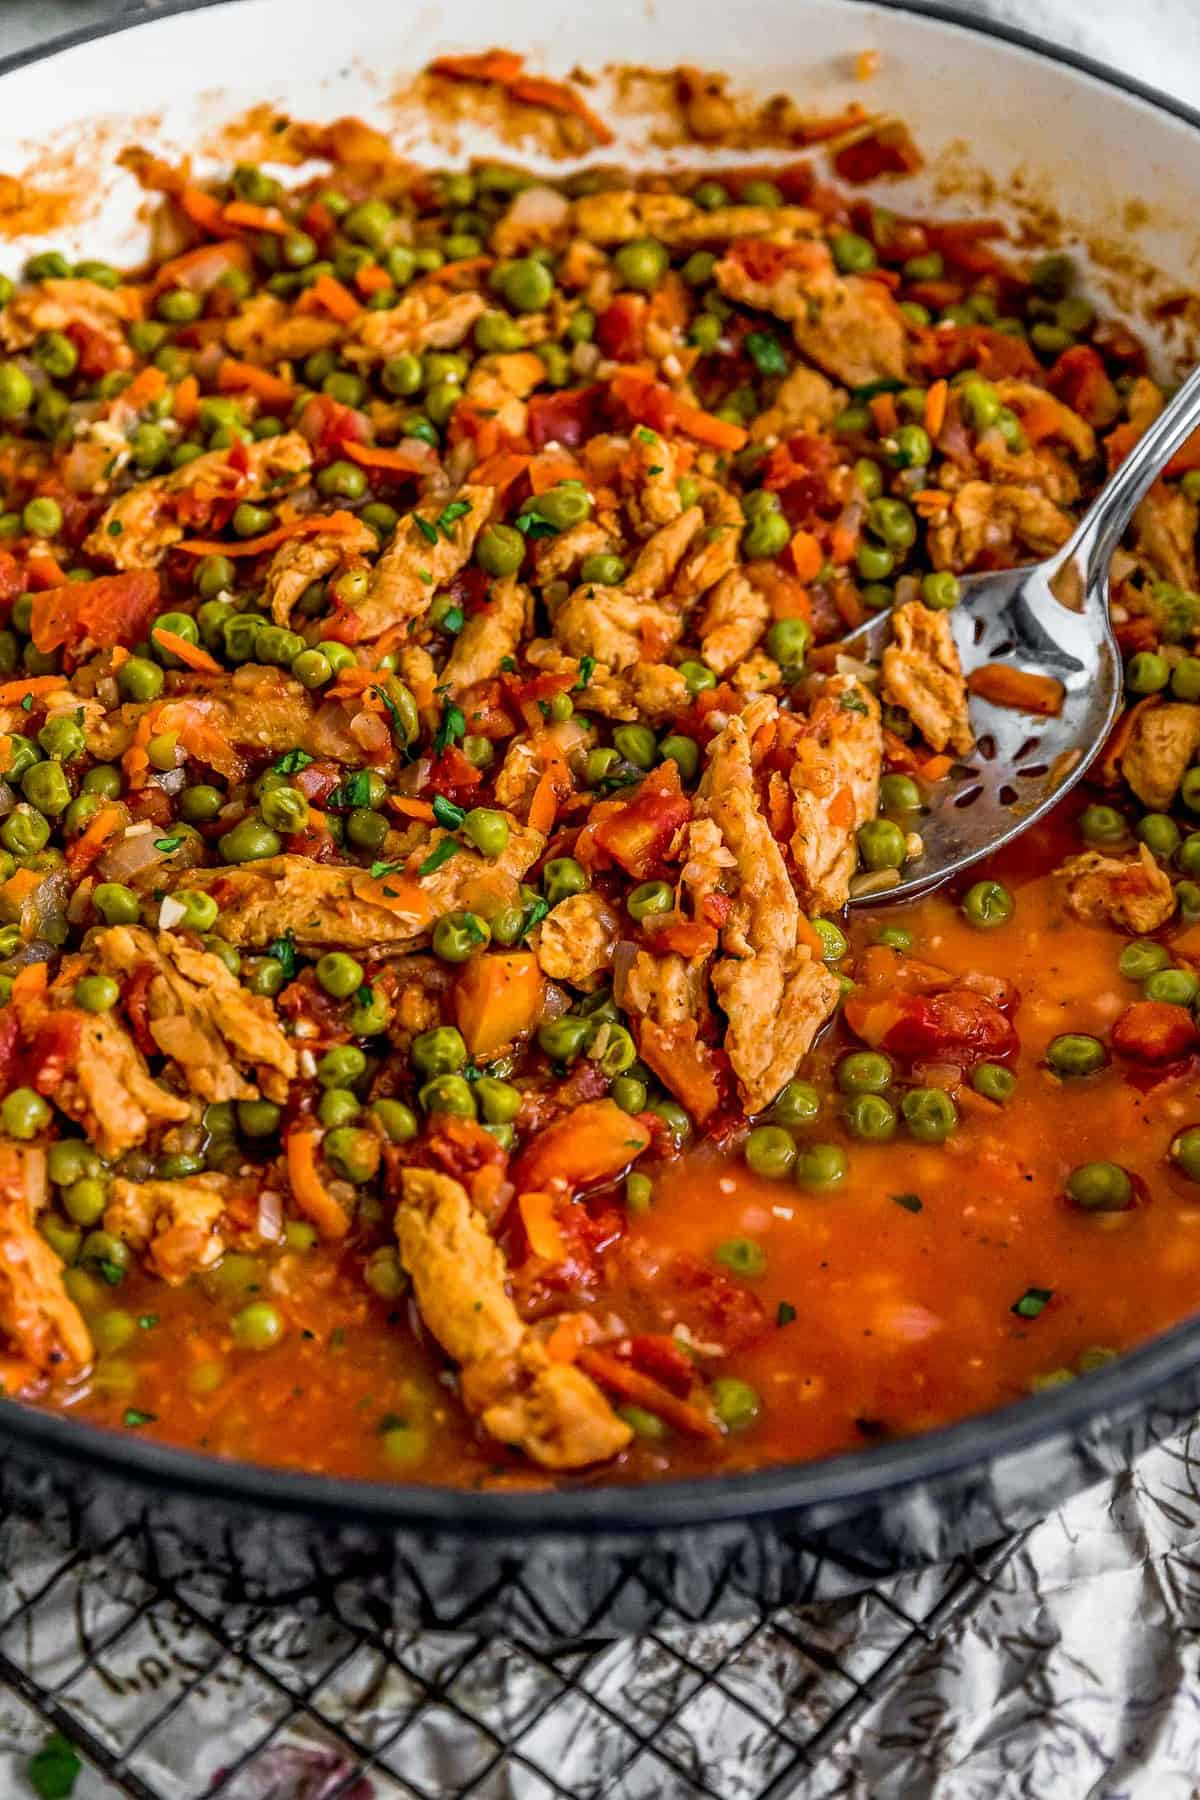 Spoon scooping Lebanese Soy Curls and Pea Stew (Bazilla)